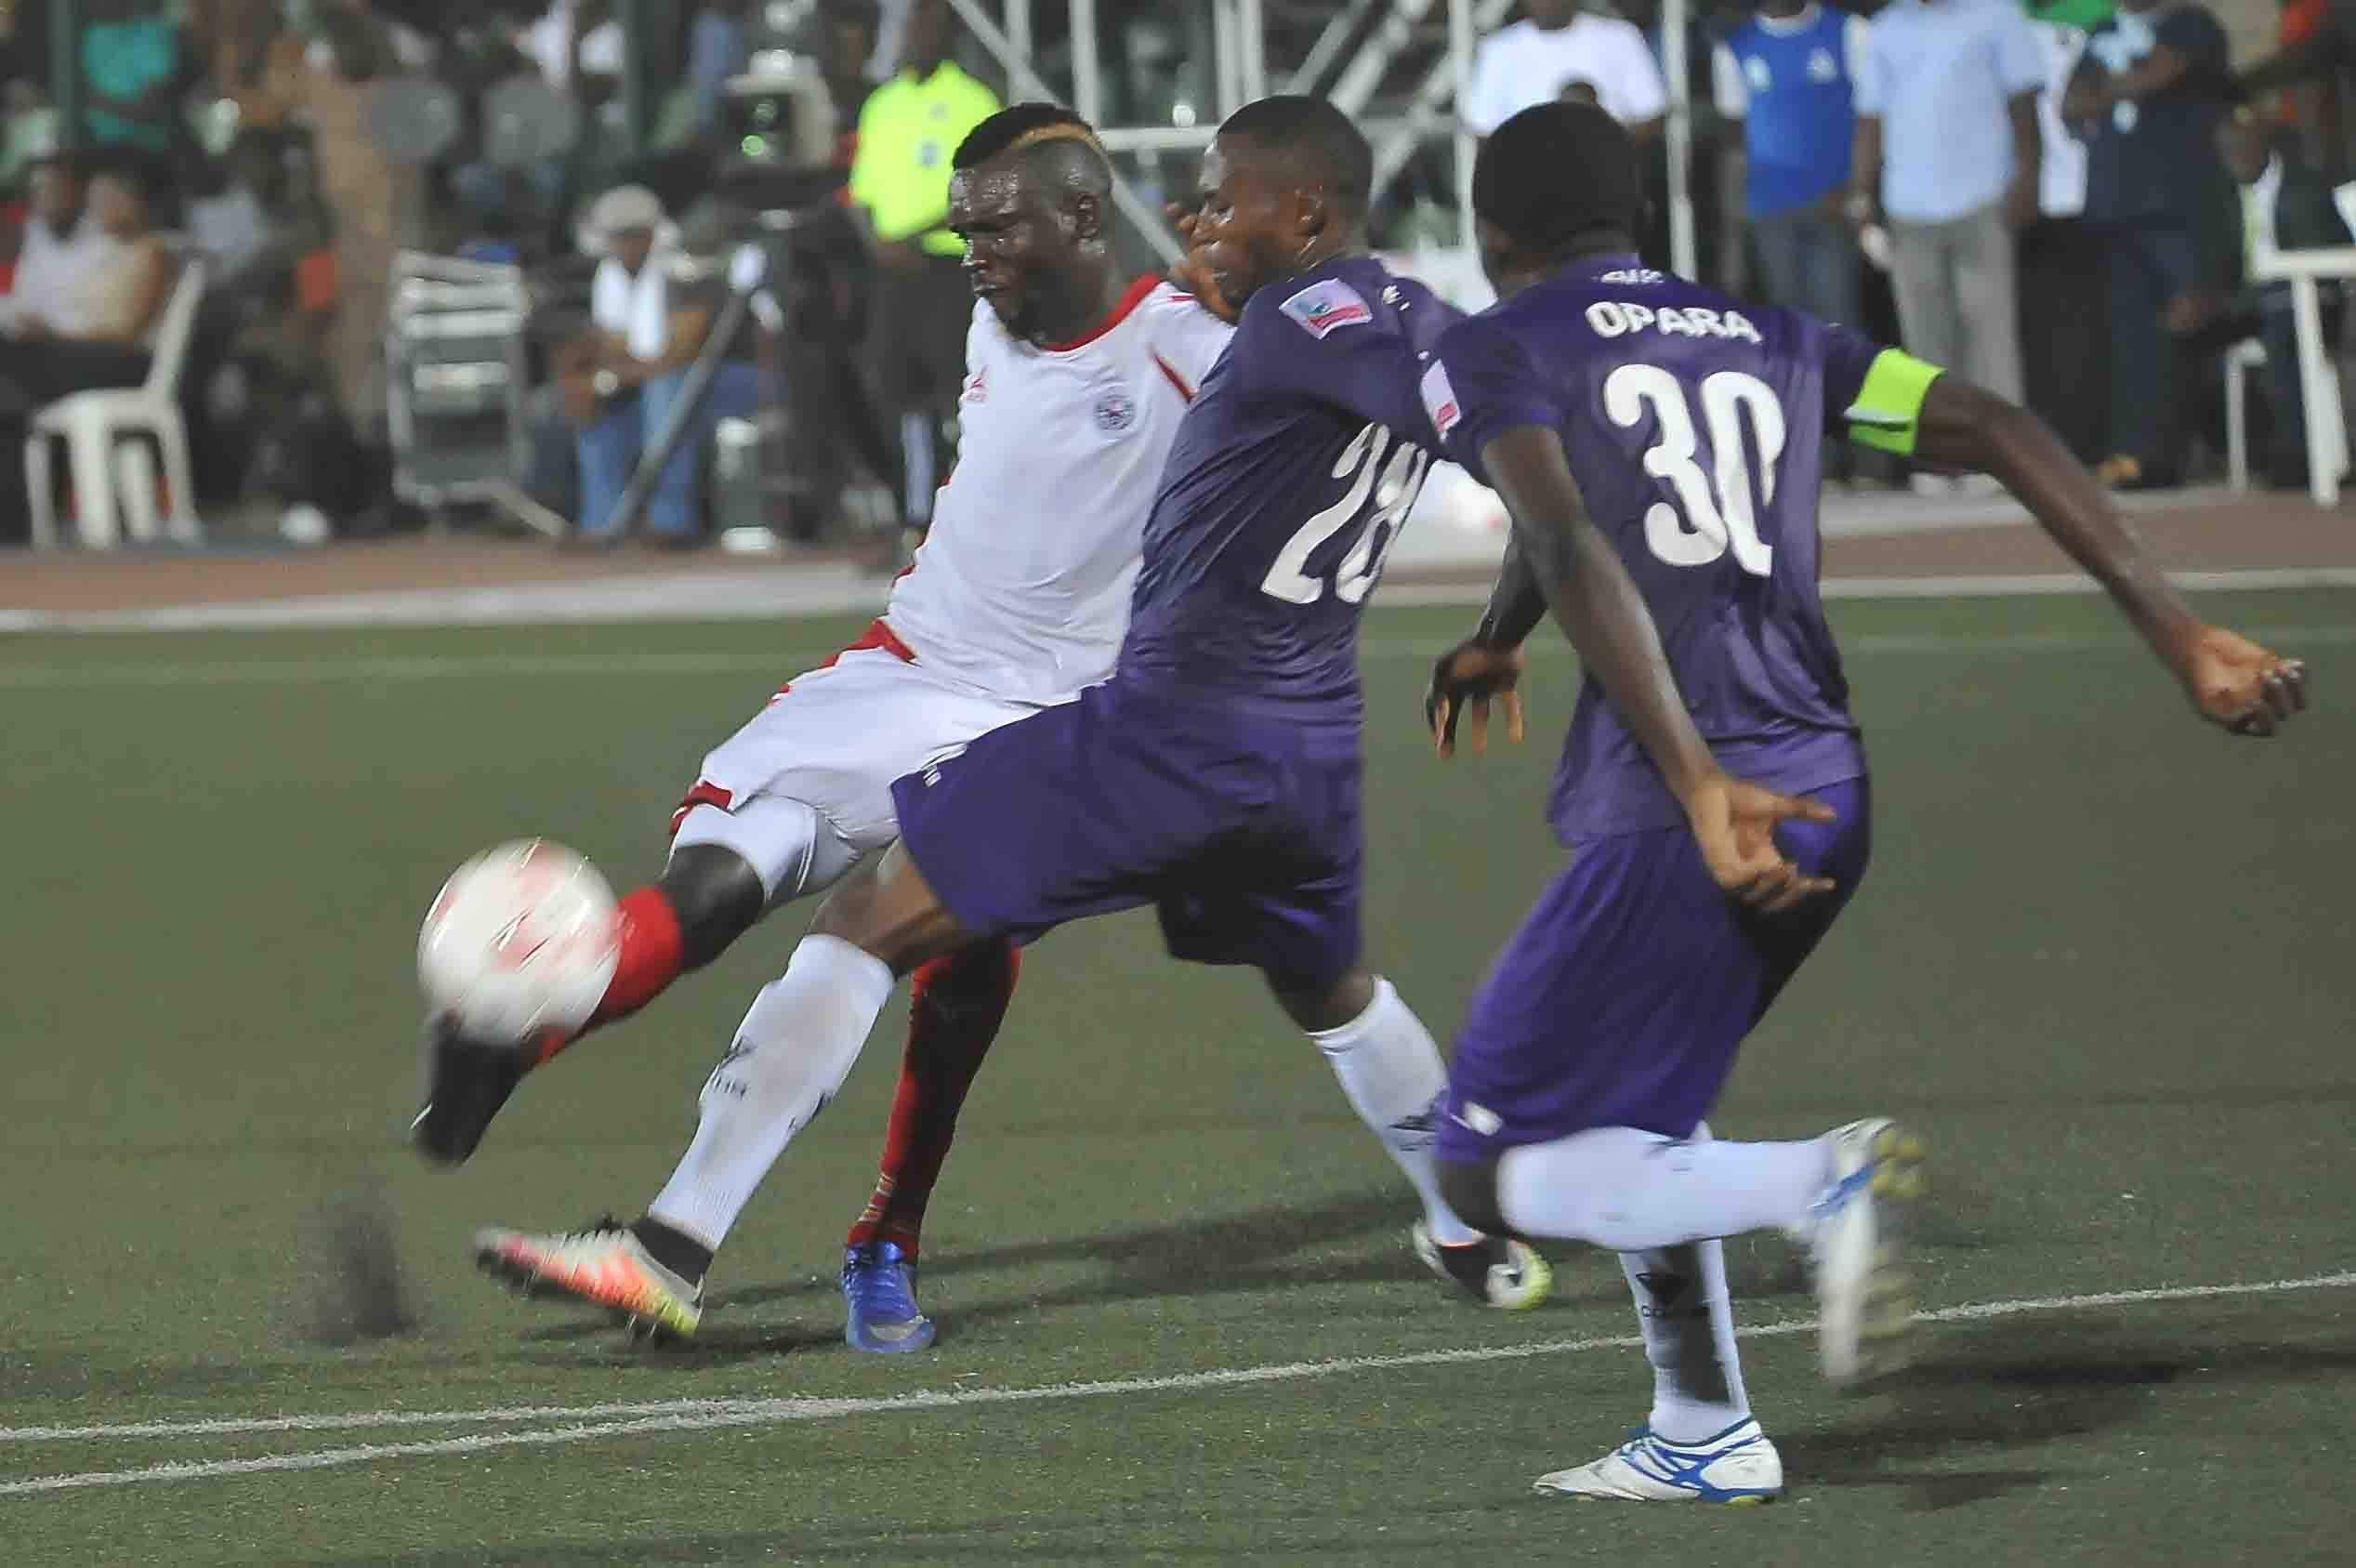 NPFL: Enyimba Subdue IfeanyiUbah As MFM Hold Wikki In Bauchi